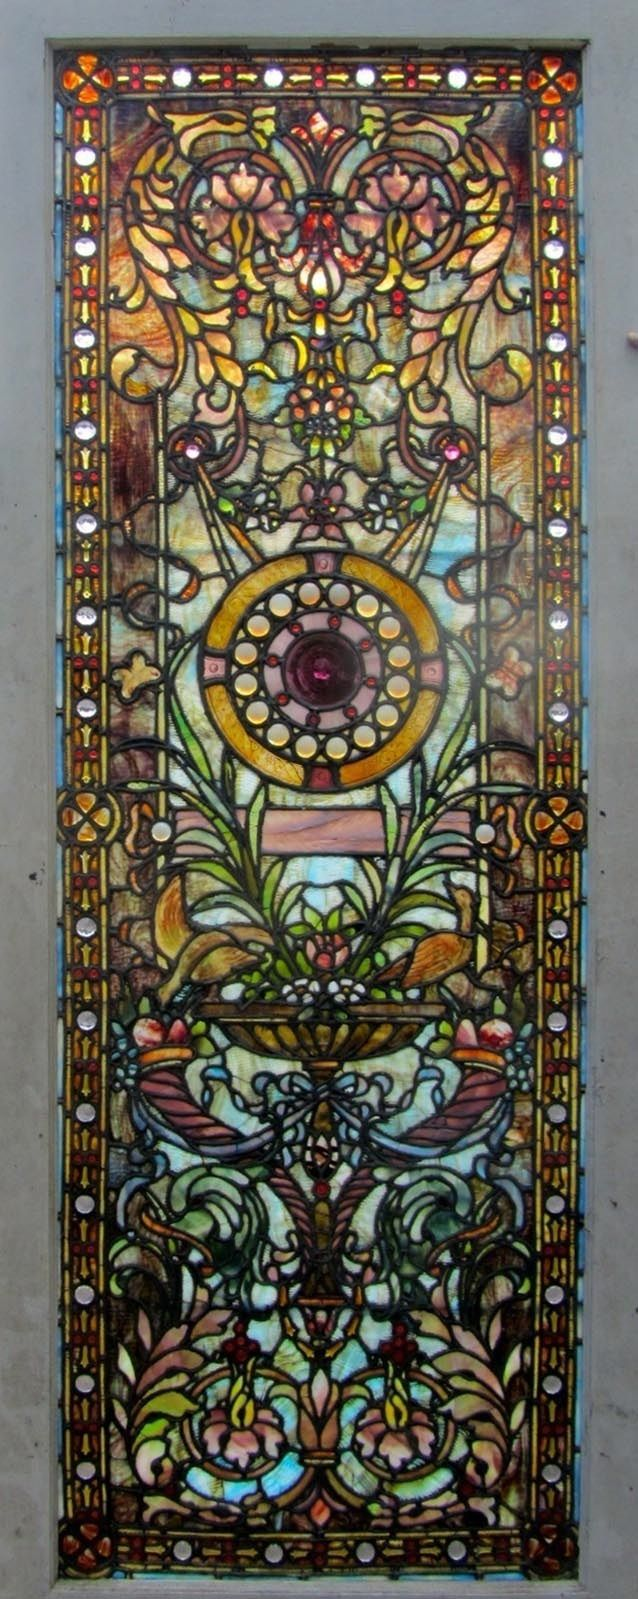 Old Leaded Glass Windows : The best antique stained glass windows ideas on